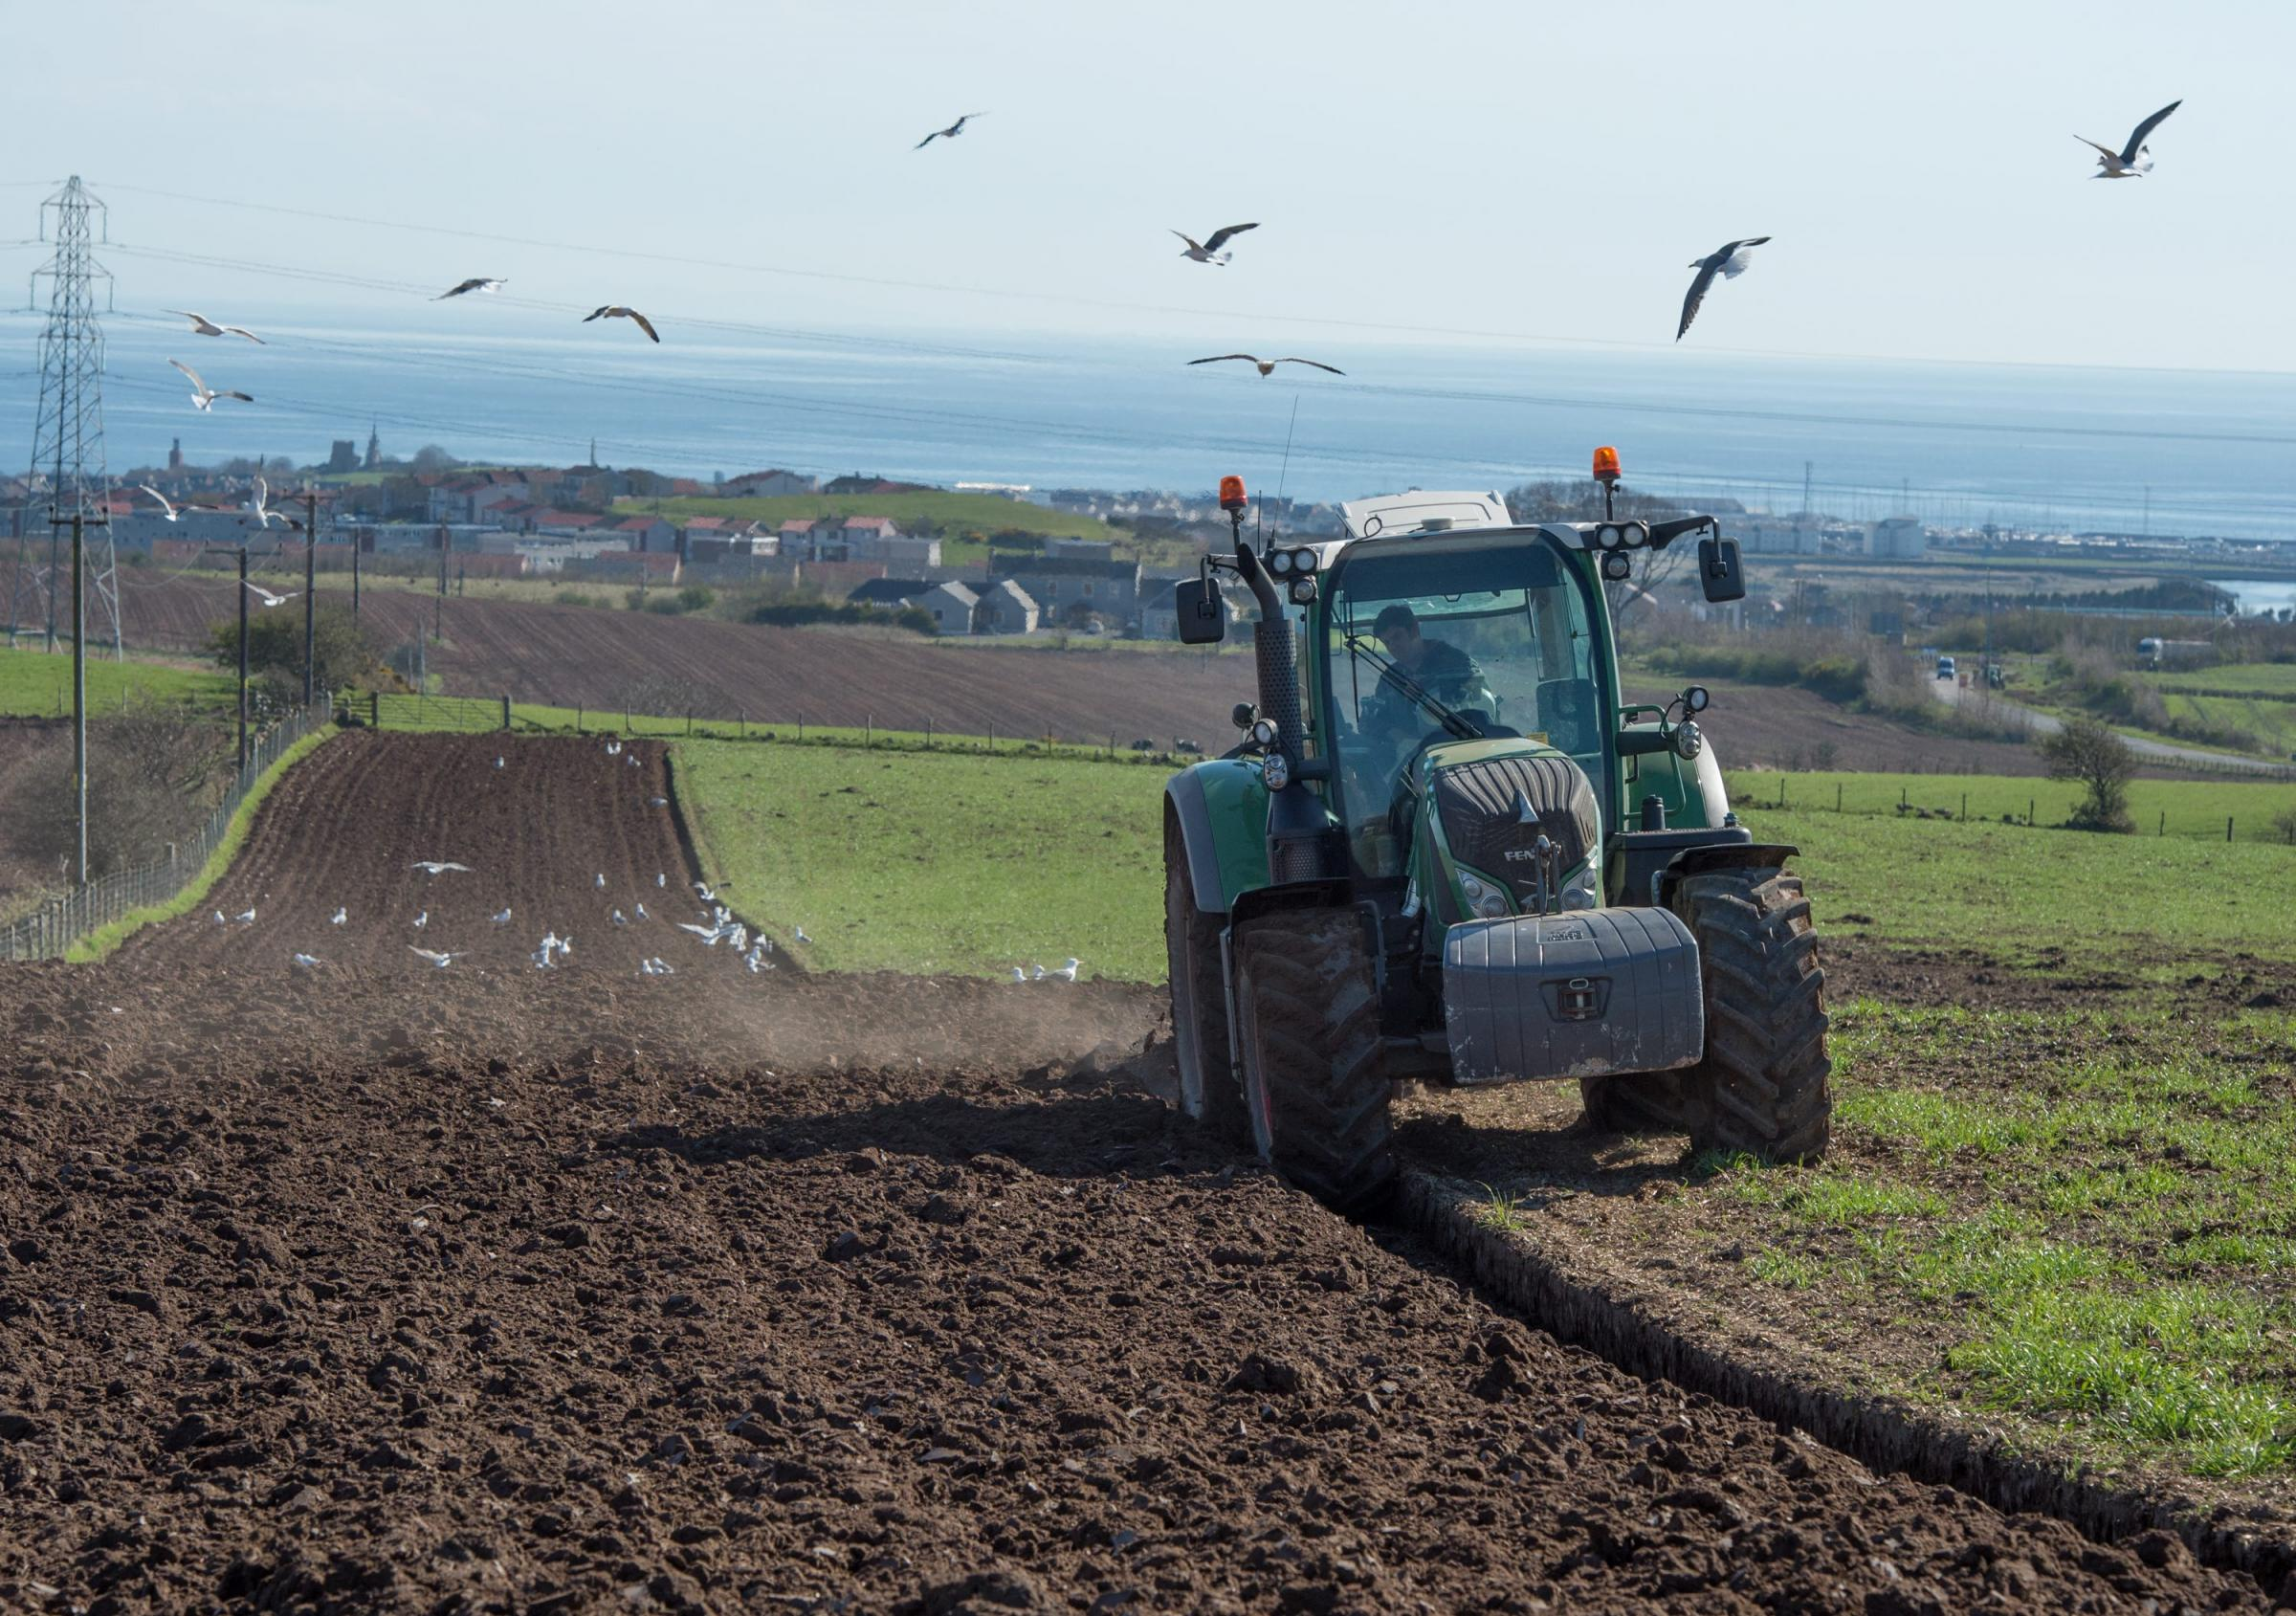 It's been a catch-up year for ploughing due to the snow and wet weather